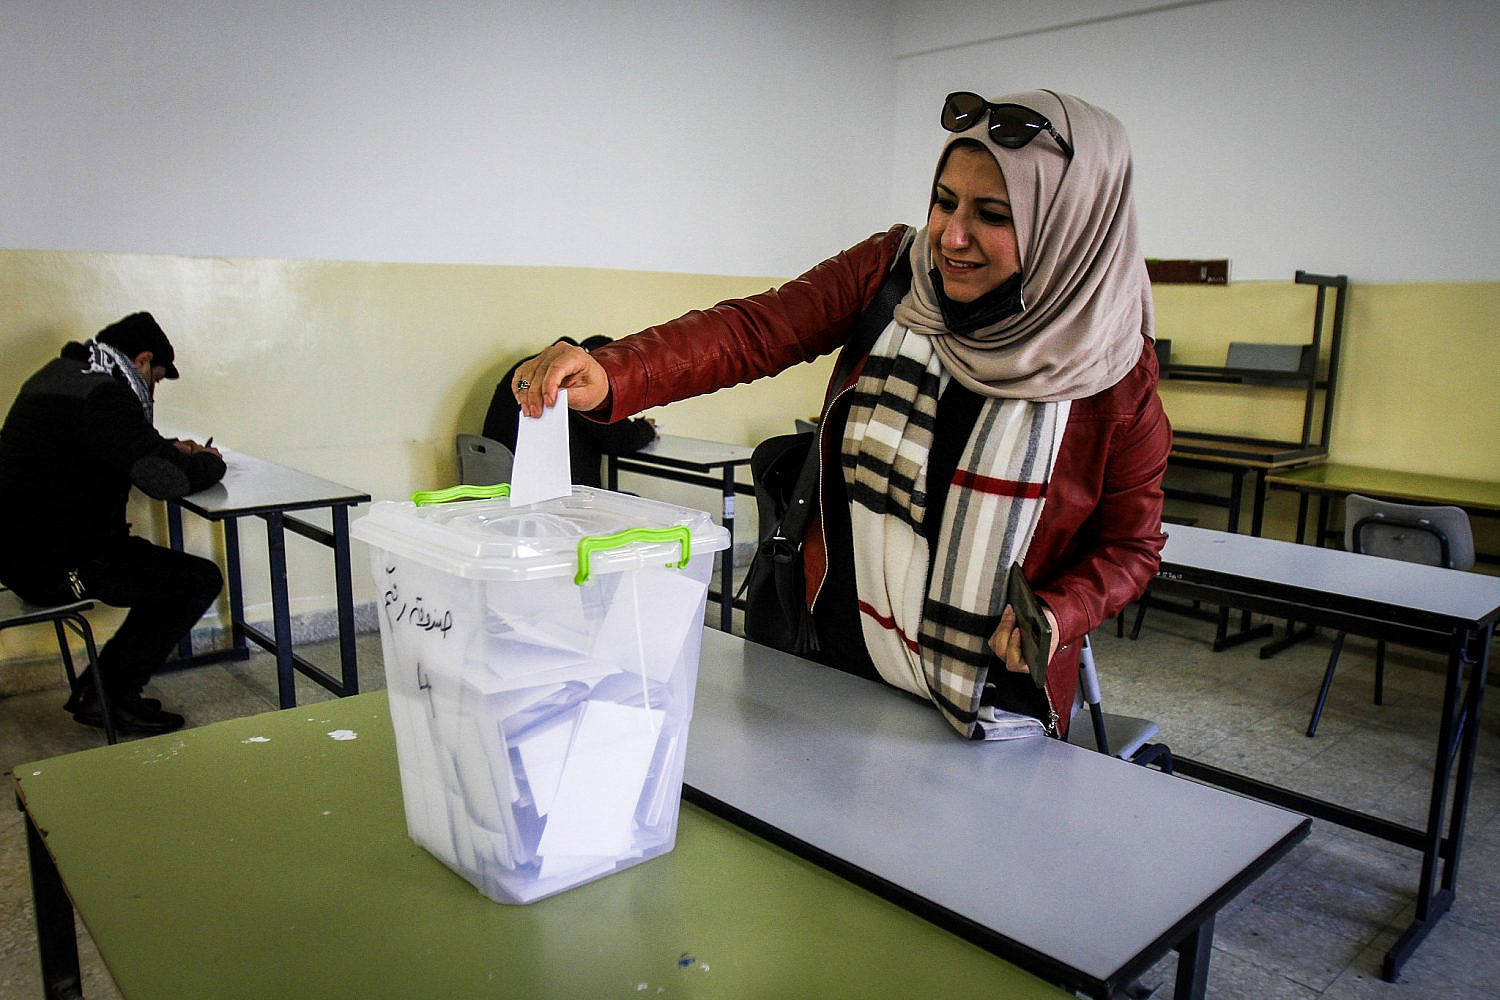 A Palestinian woman casts her ballot during the elections for the Fatah movement, on the outskirts of the West Bank city of Nablus, Jan. 23, 2021. (Nasser Ishtayeh/Flash90)